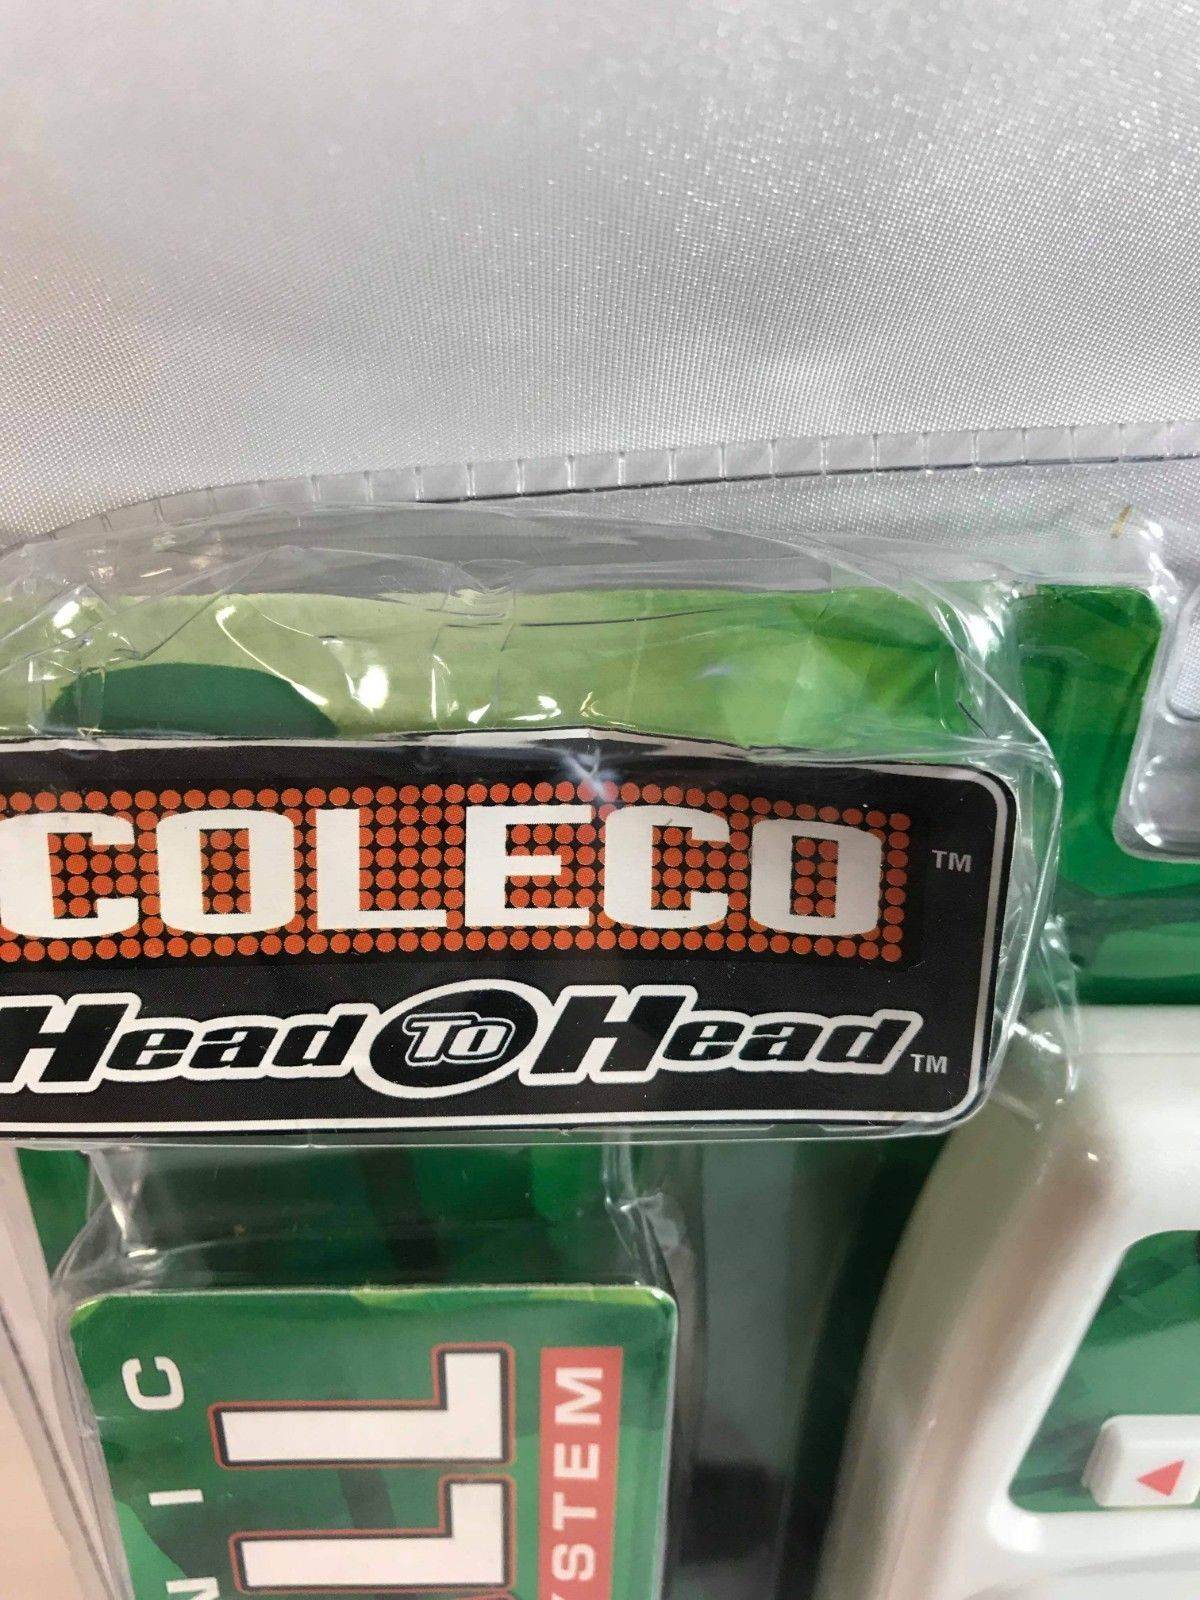 Coleco Head to Head Electronic Baseball 2 Player Game System